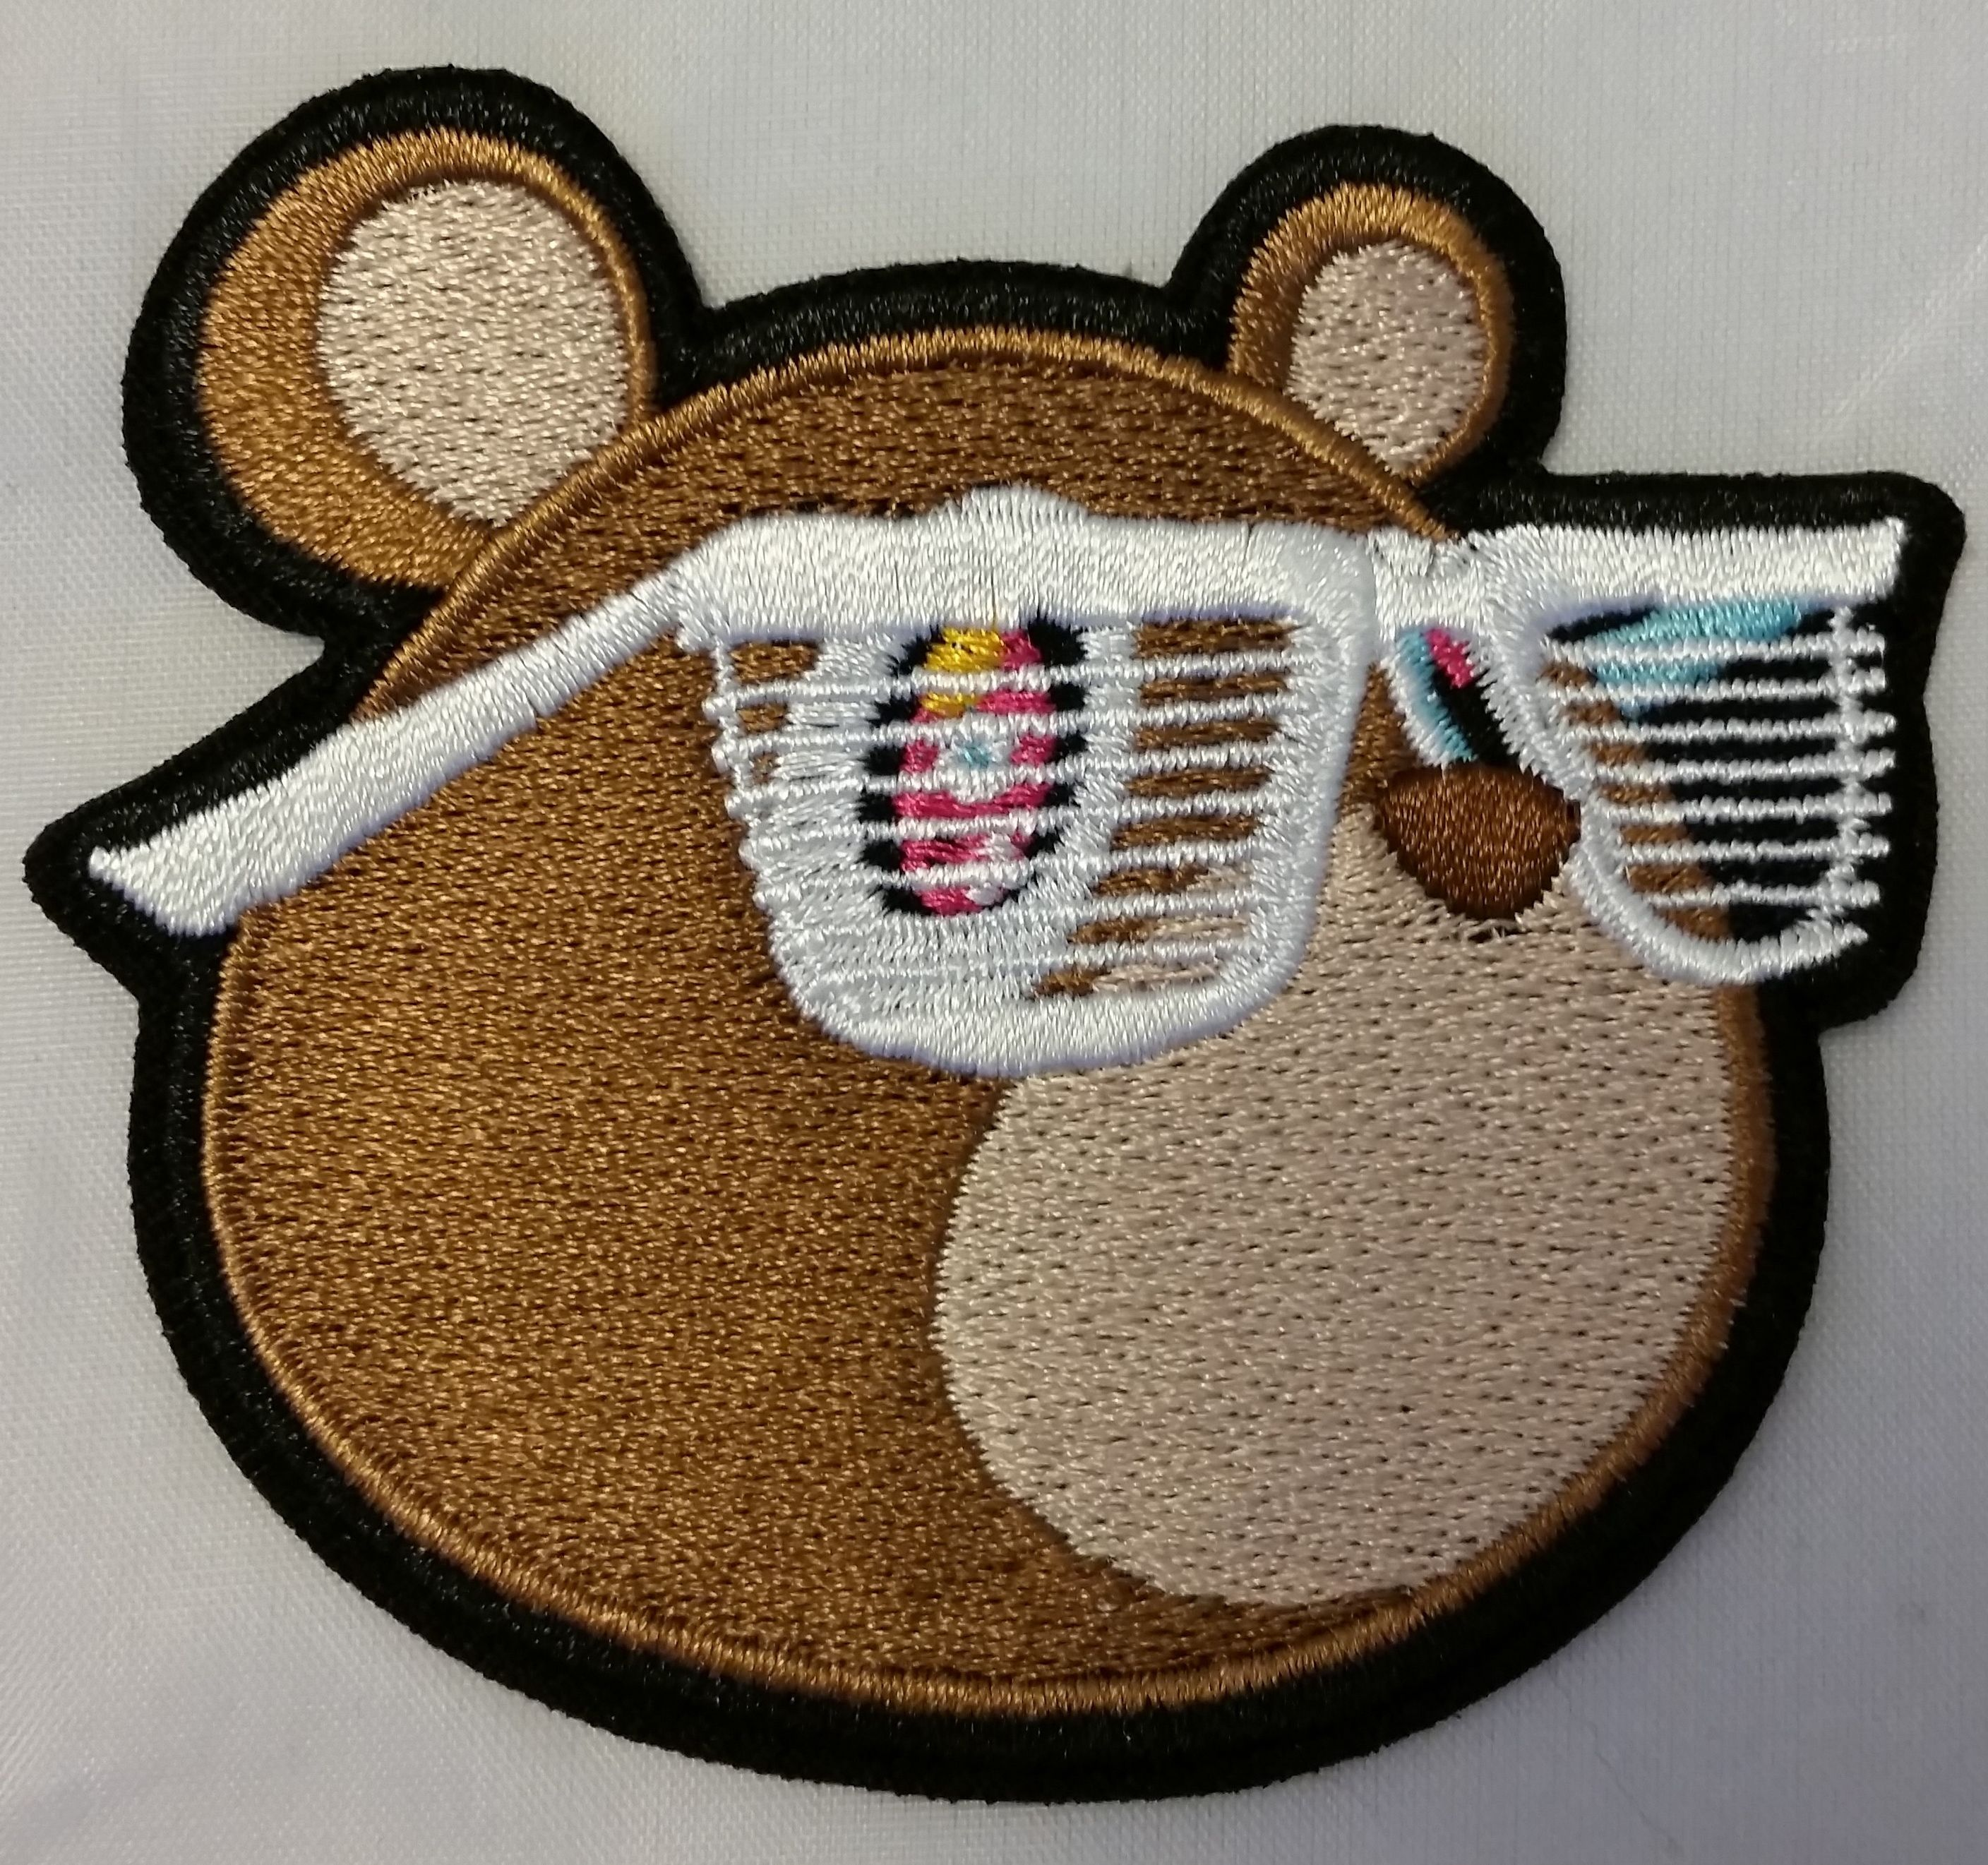 iron on patch featuring the Yeezus bear  back in stock and